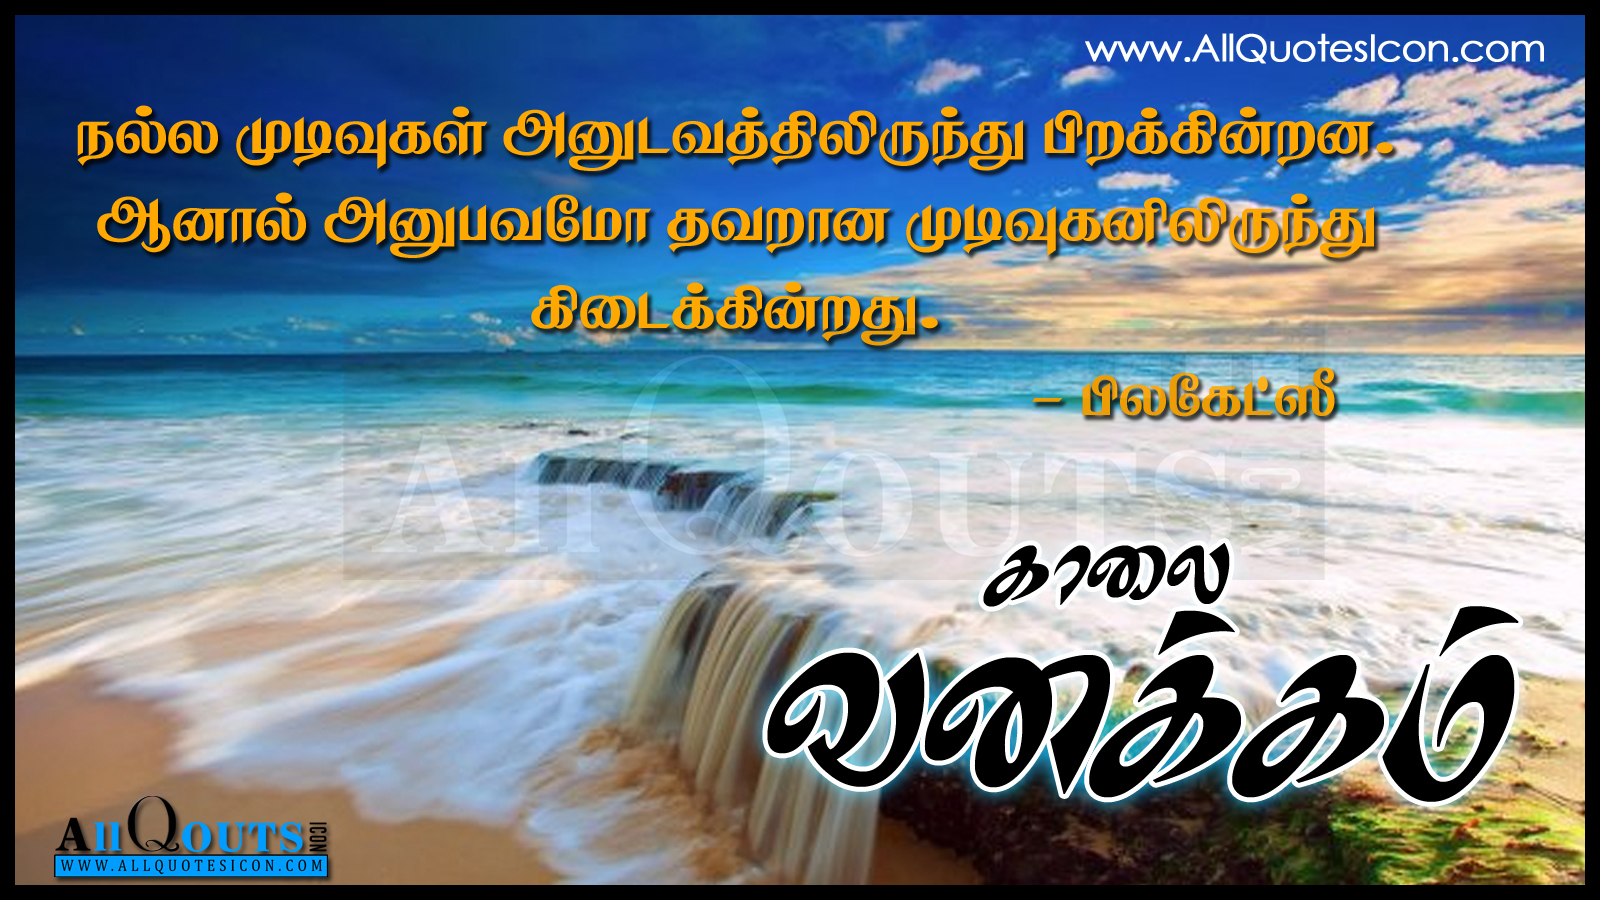 Good Morning Quotes Goodreads : Good morning quotes in tamil hd wallpapers best